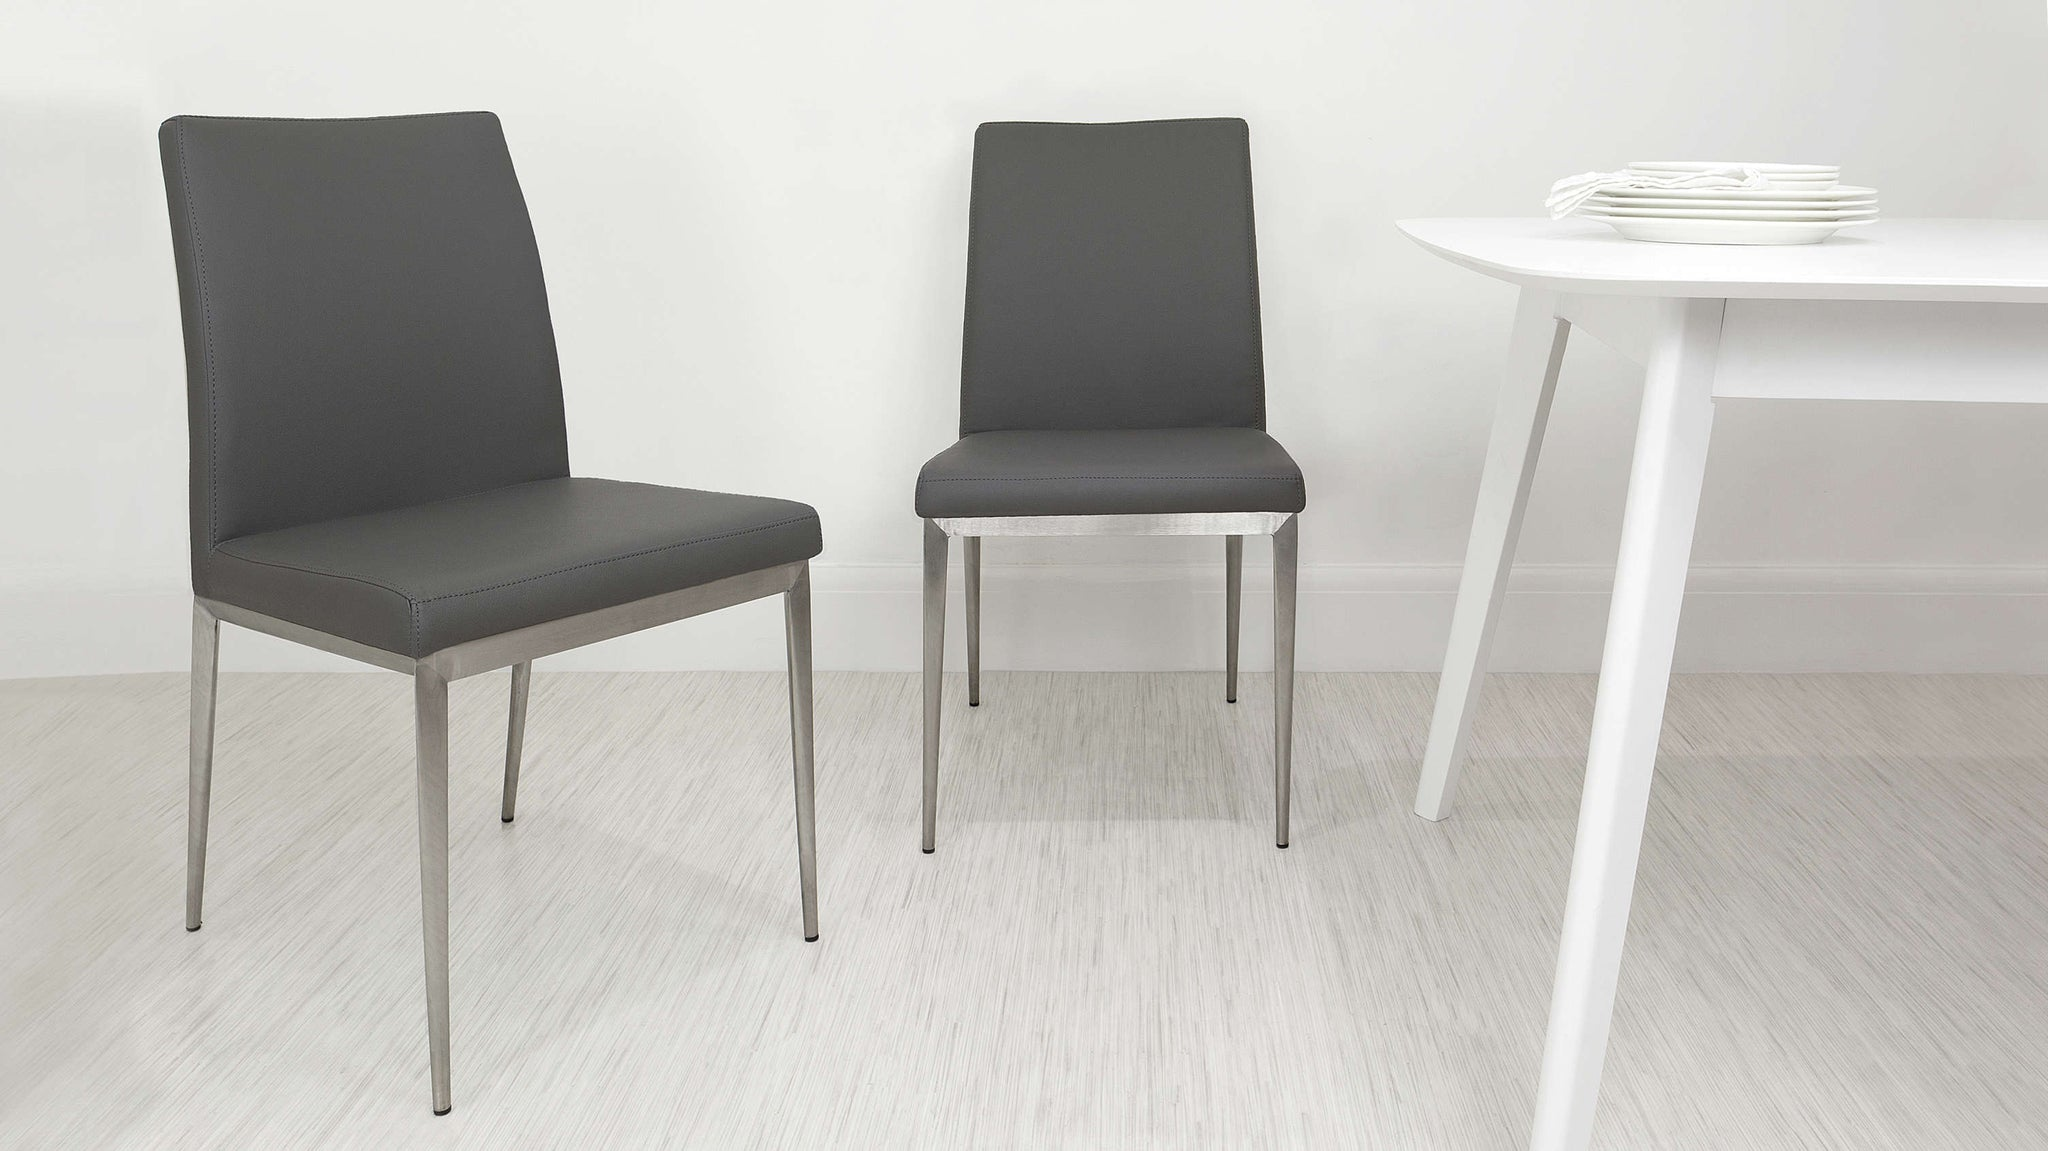 Modern Grey Dining Chairs with Metal Legs